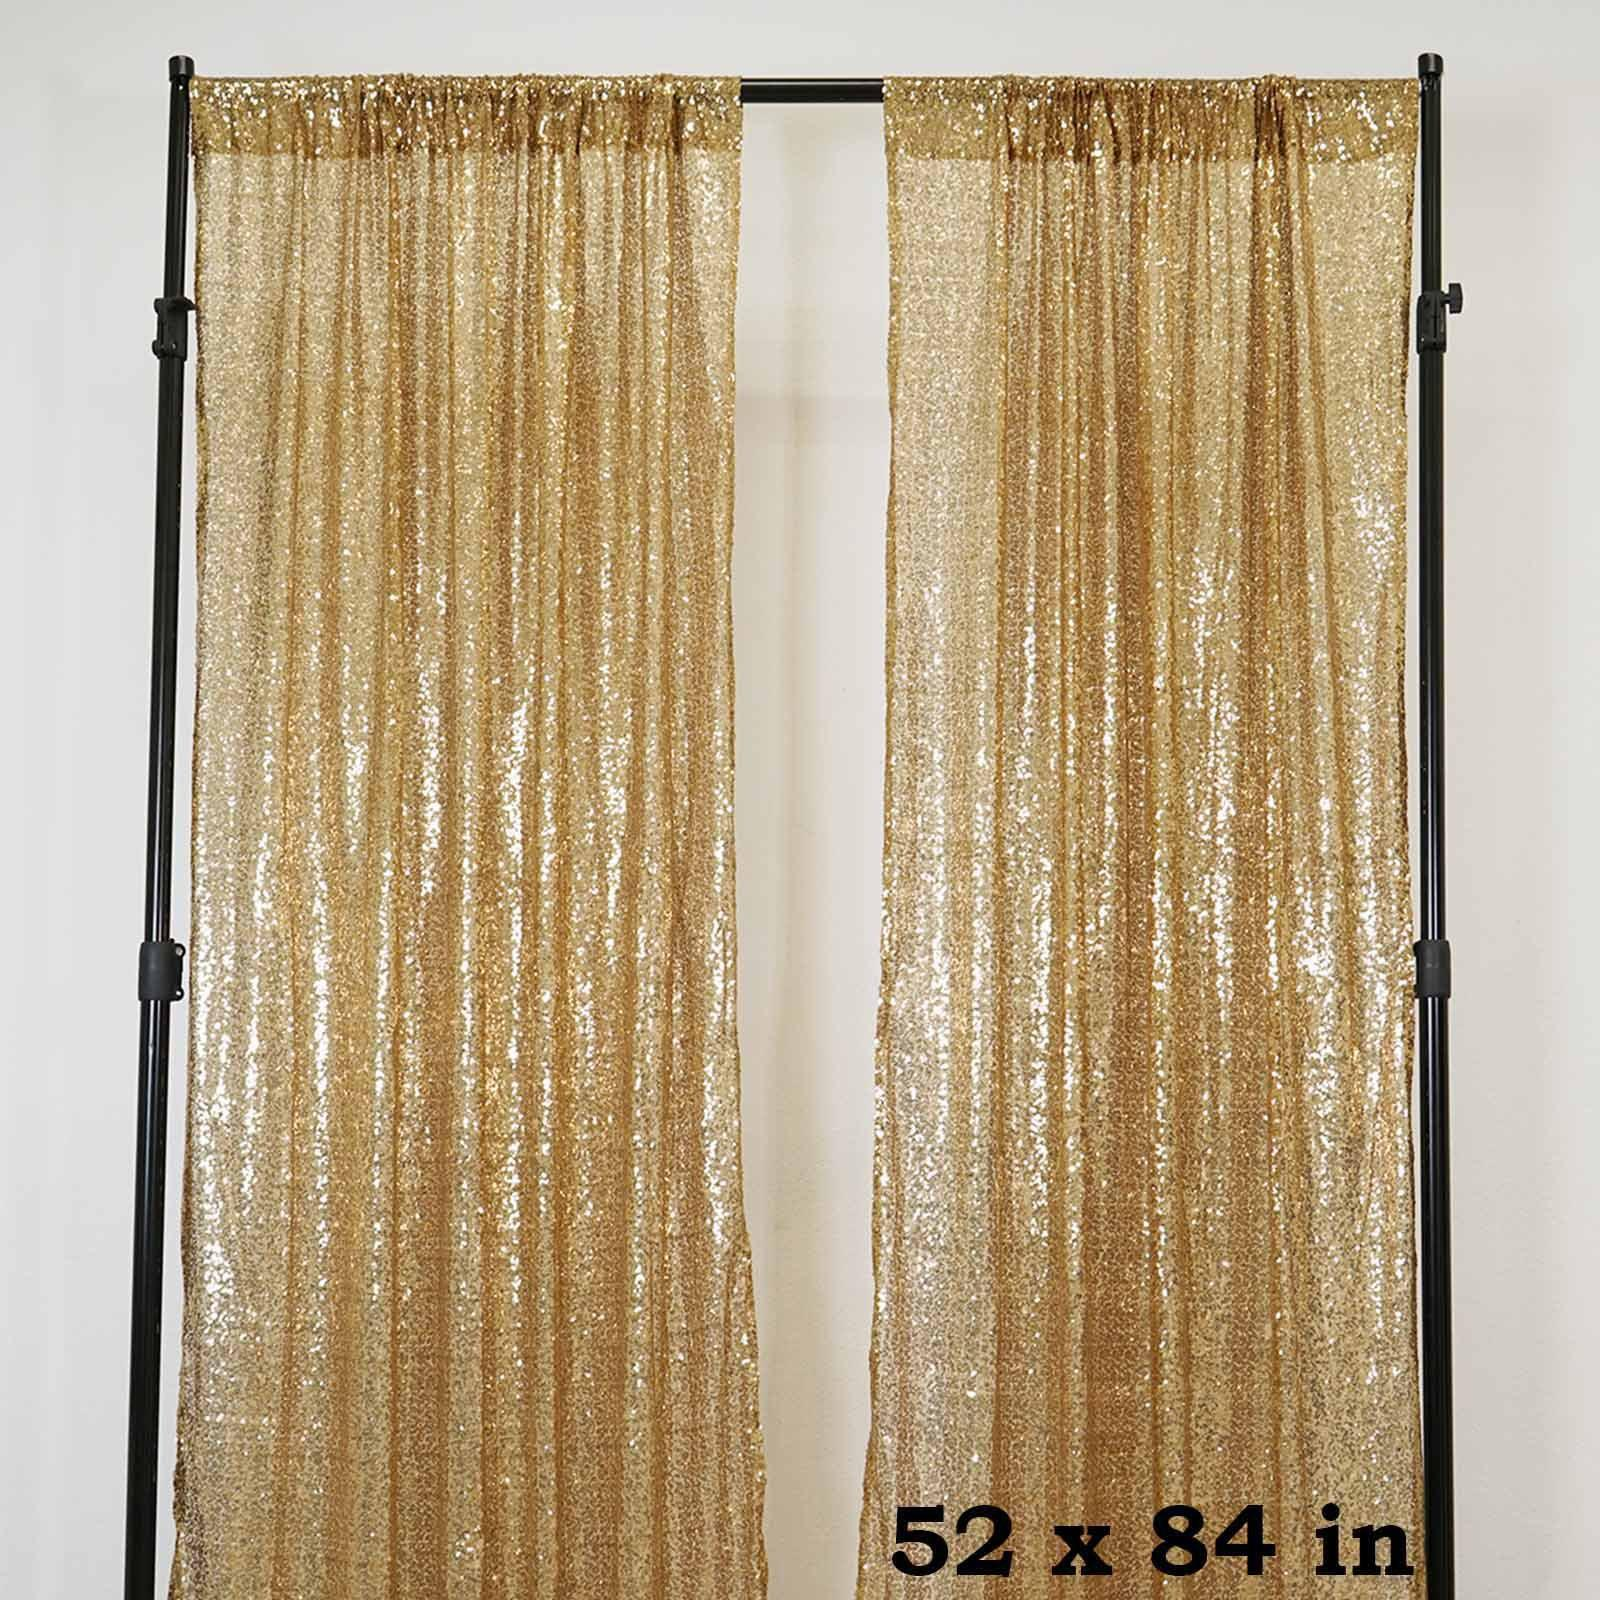 Glitzy Sequin Curtains 52x84 Gold Pack Of 2 Window